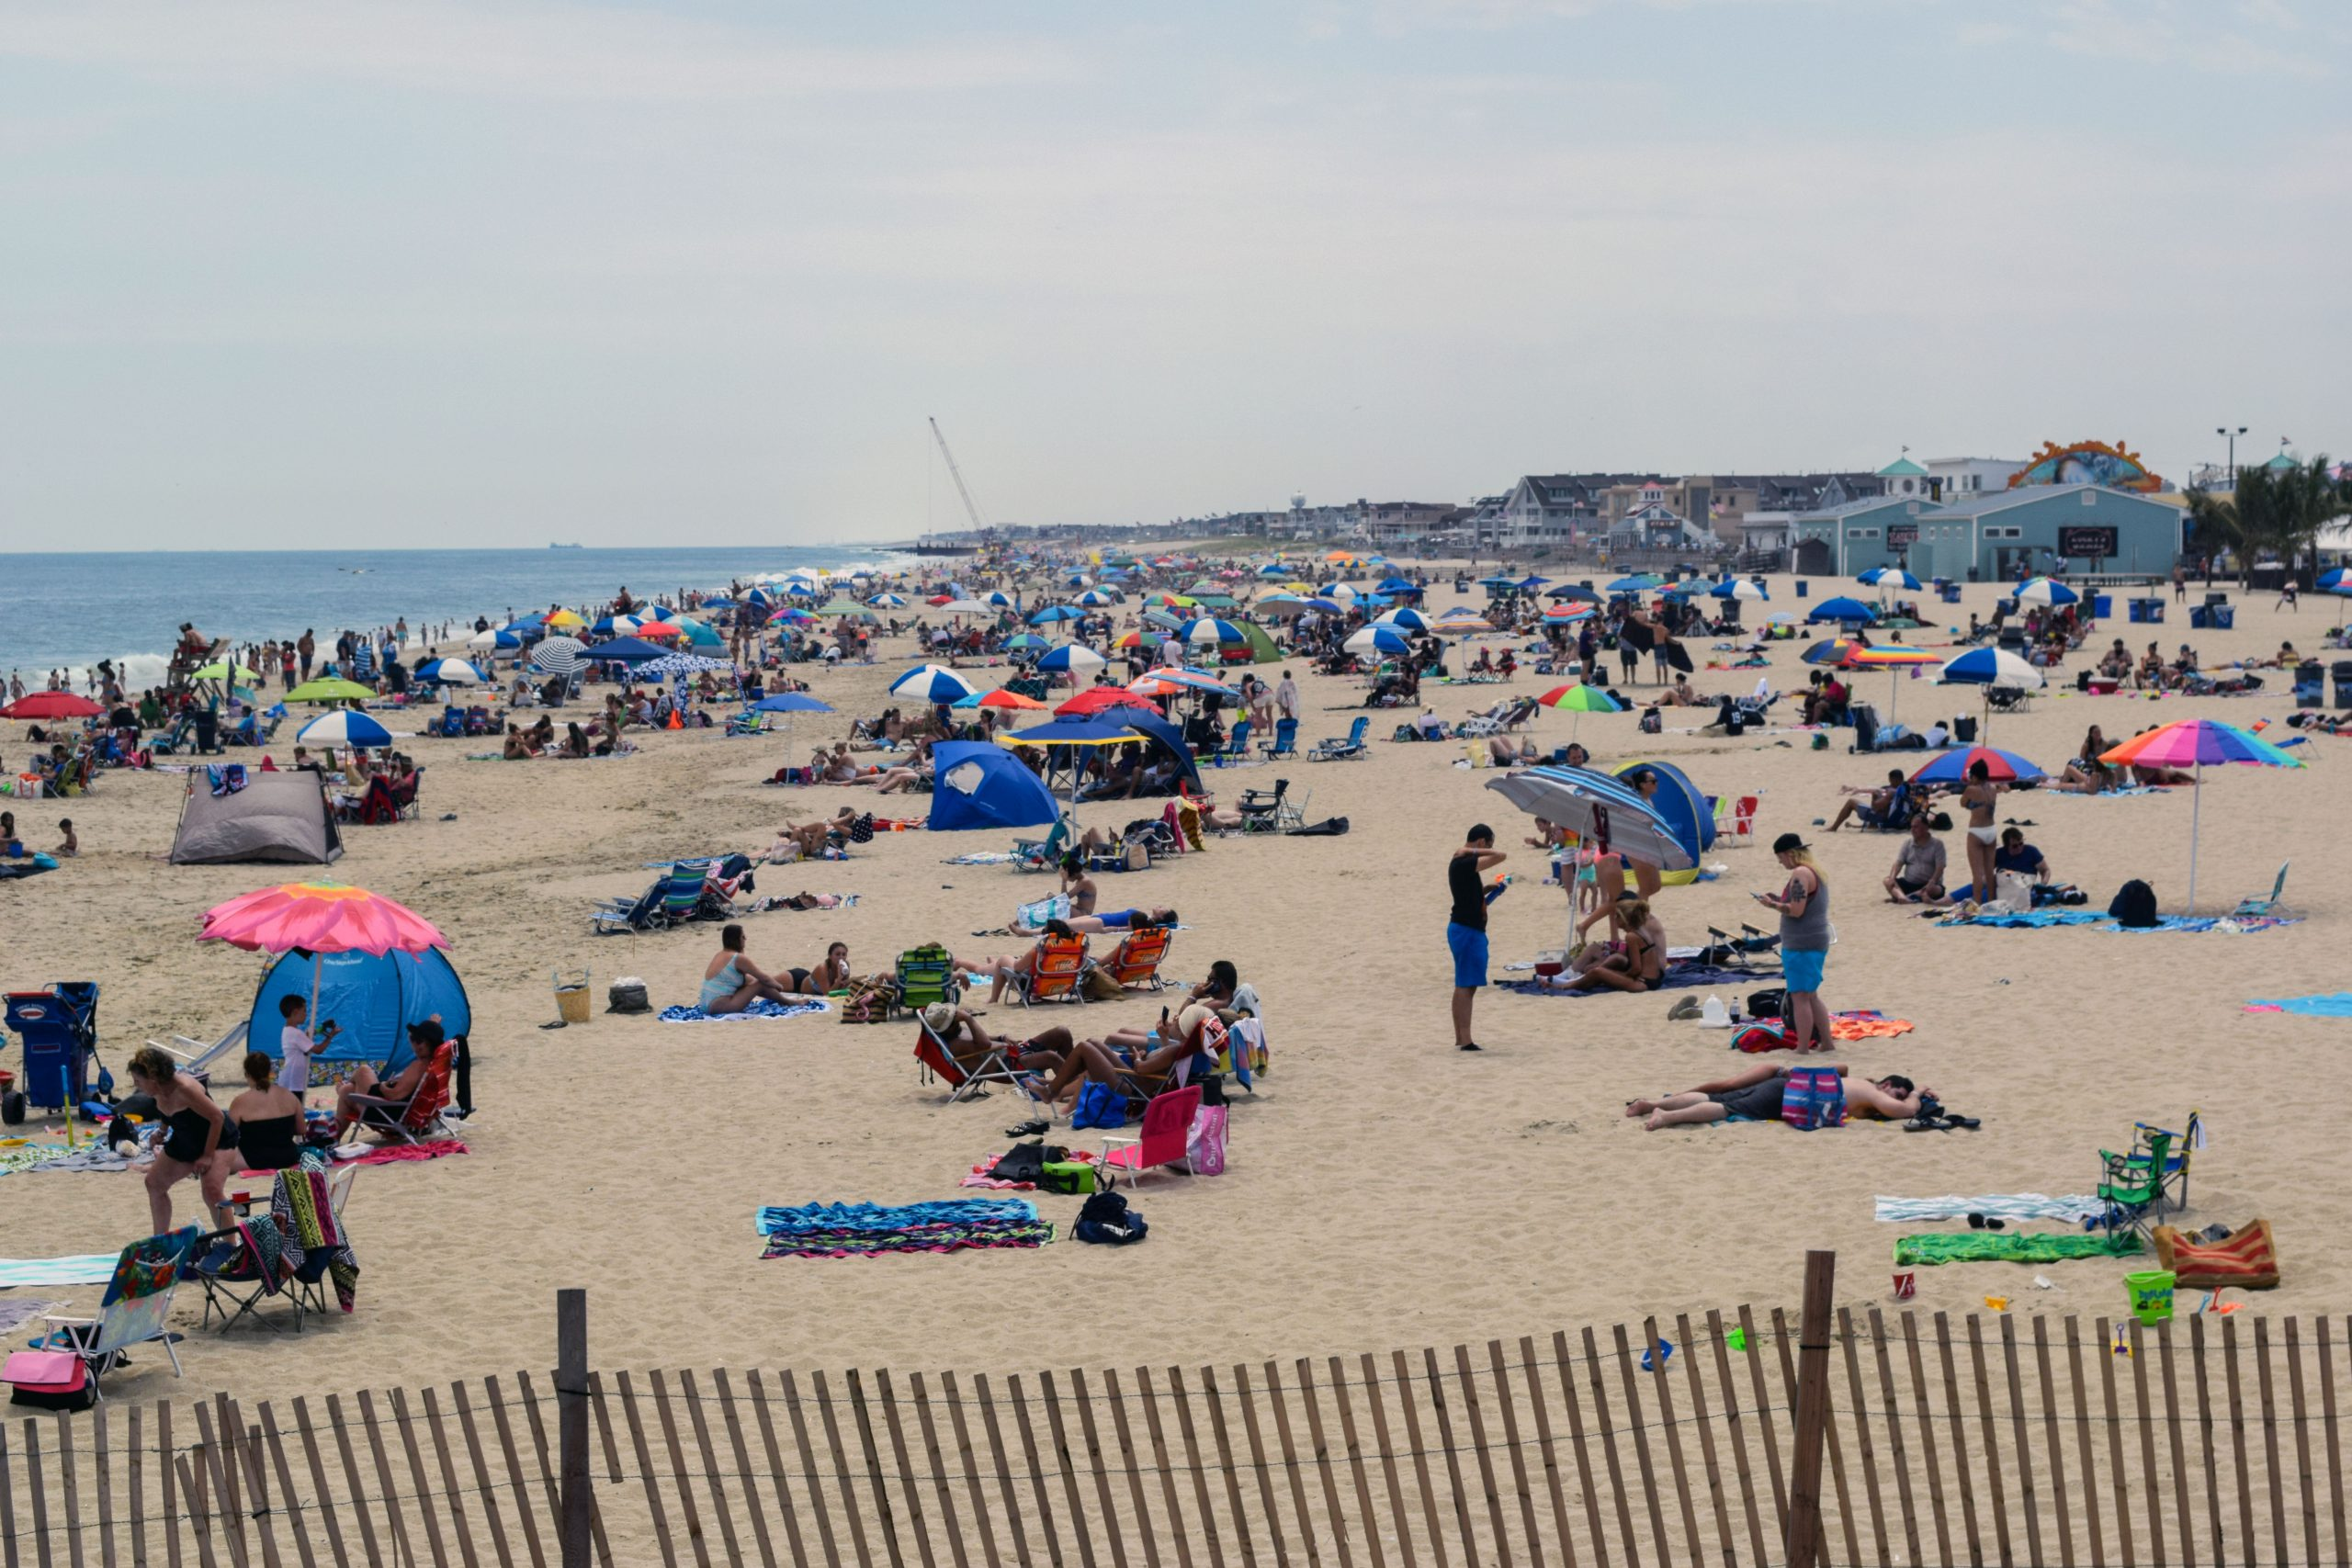 The Point Pleasant Beach oceanfront, Point Pleasant Beach, N.J. (Photo: Daniel Nee)